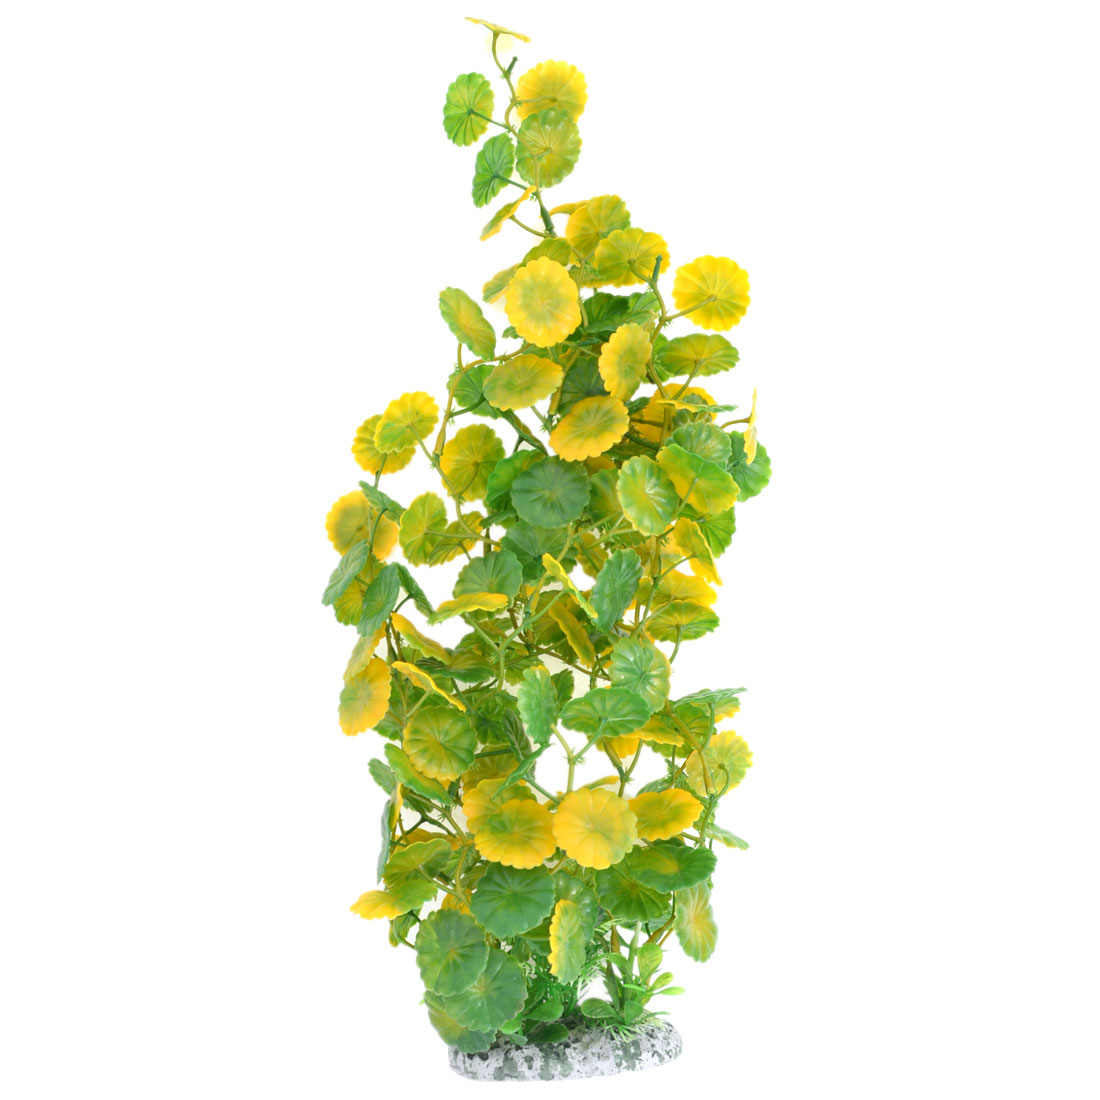 Plastic Artificial Landscaping Water Plant Ornament Green Yellow for Fish Tank